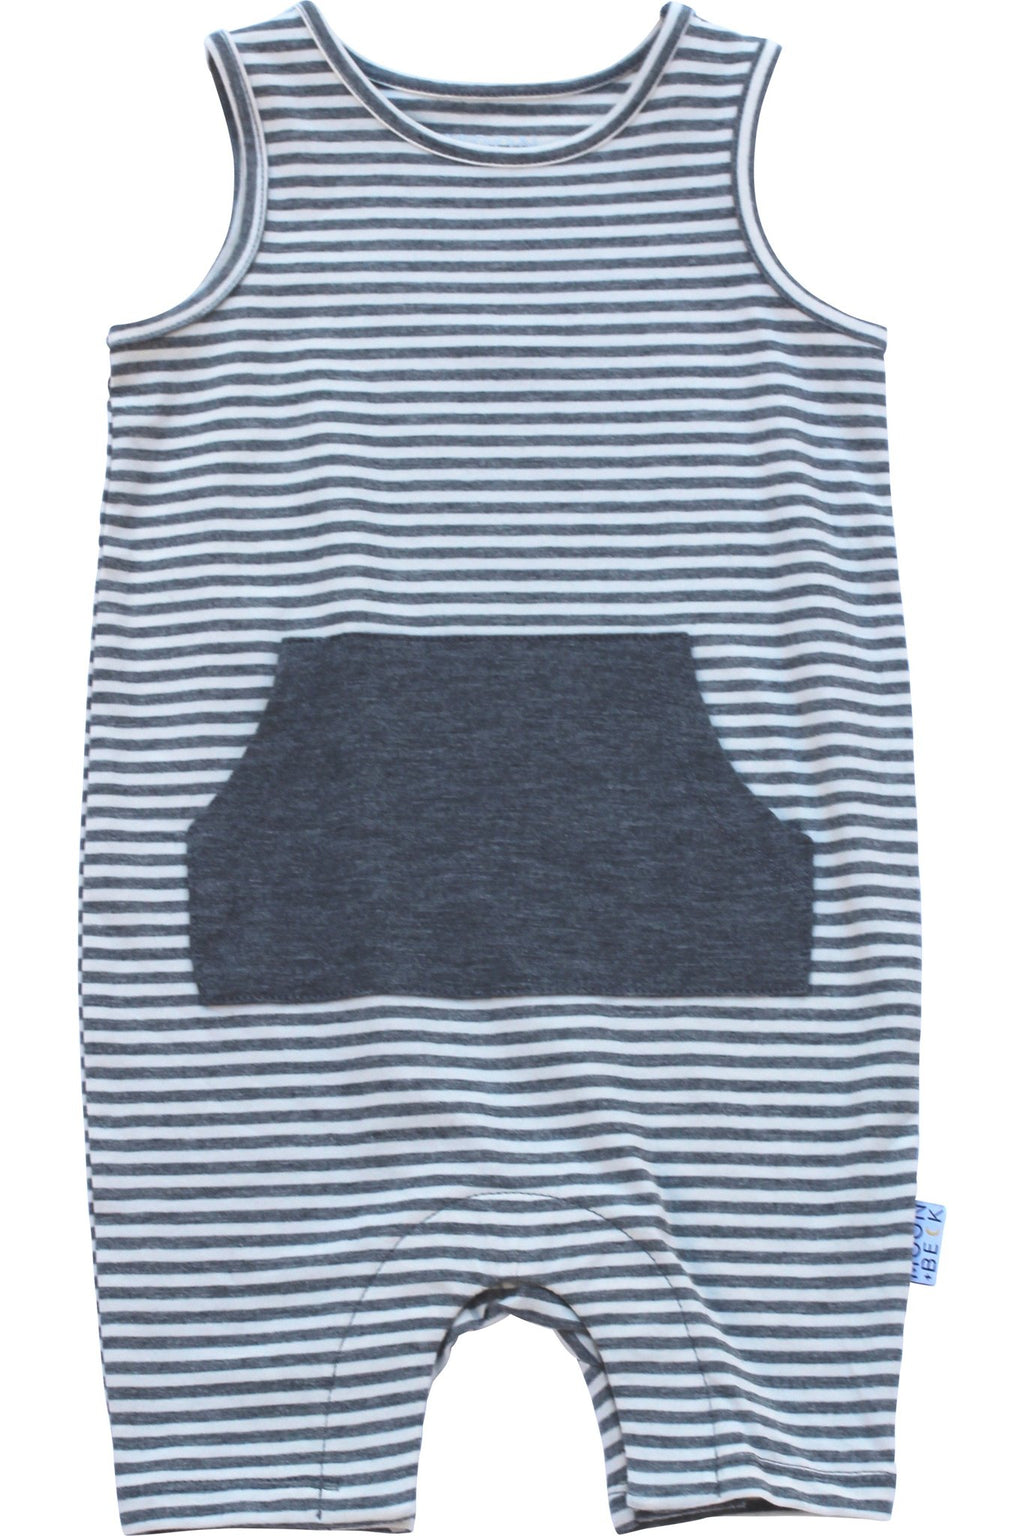 The Tank Romper II (Grey Stripe) - Le Bébé Chic Boutique